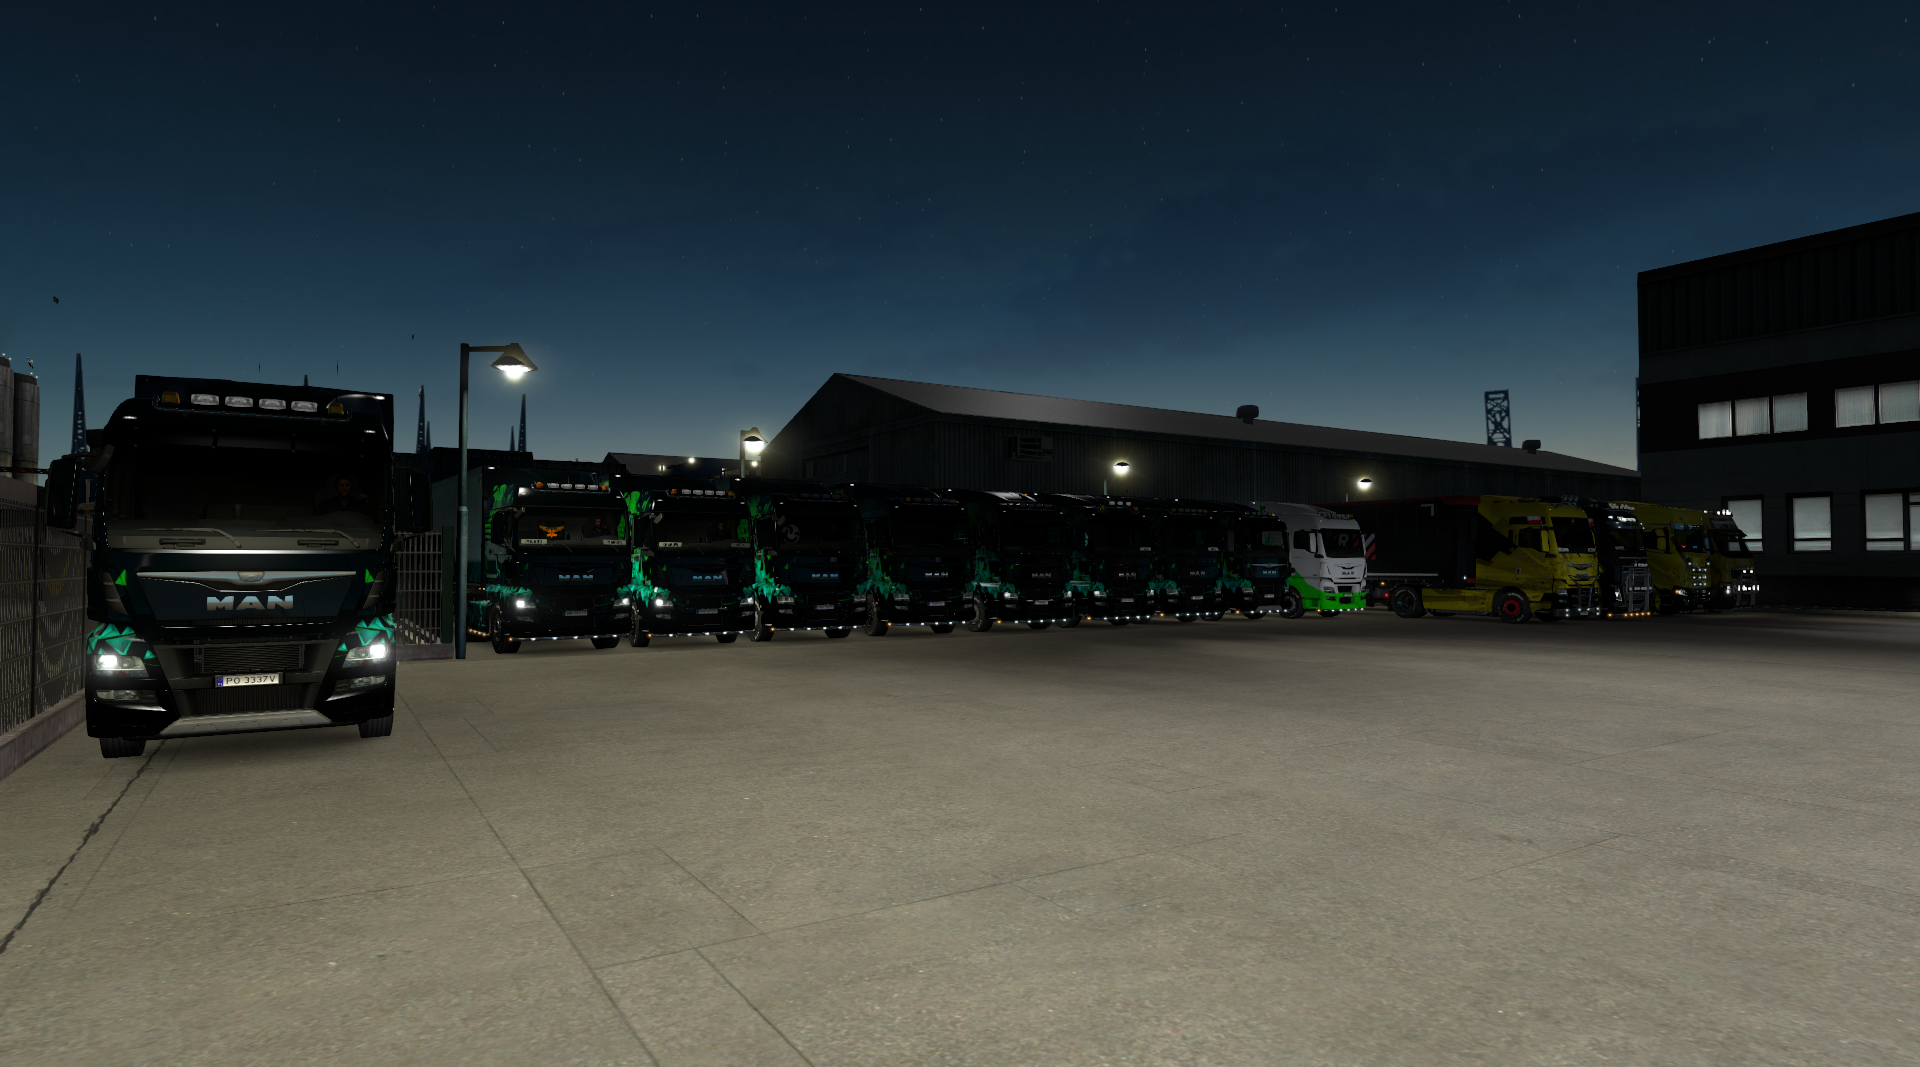 ets2_20190216_203448_00.png